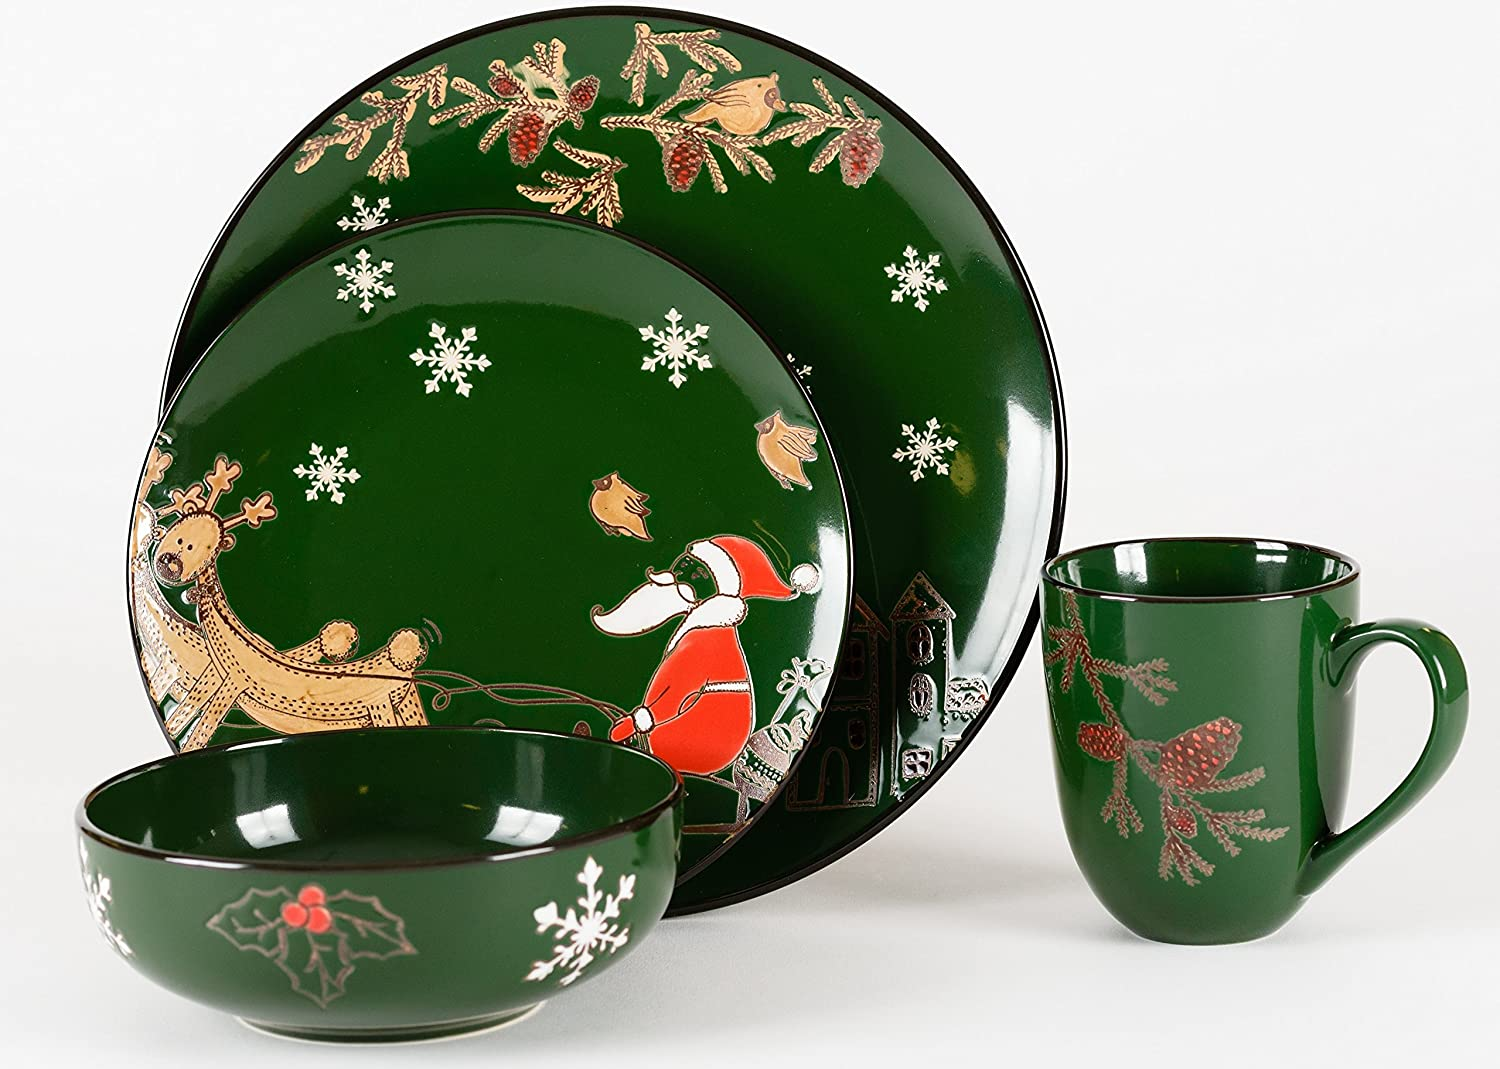 Santa Claus Dinnerware Sets Christmas Wikii